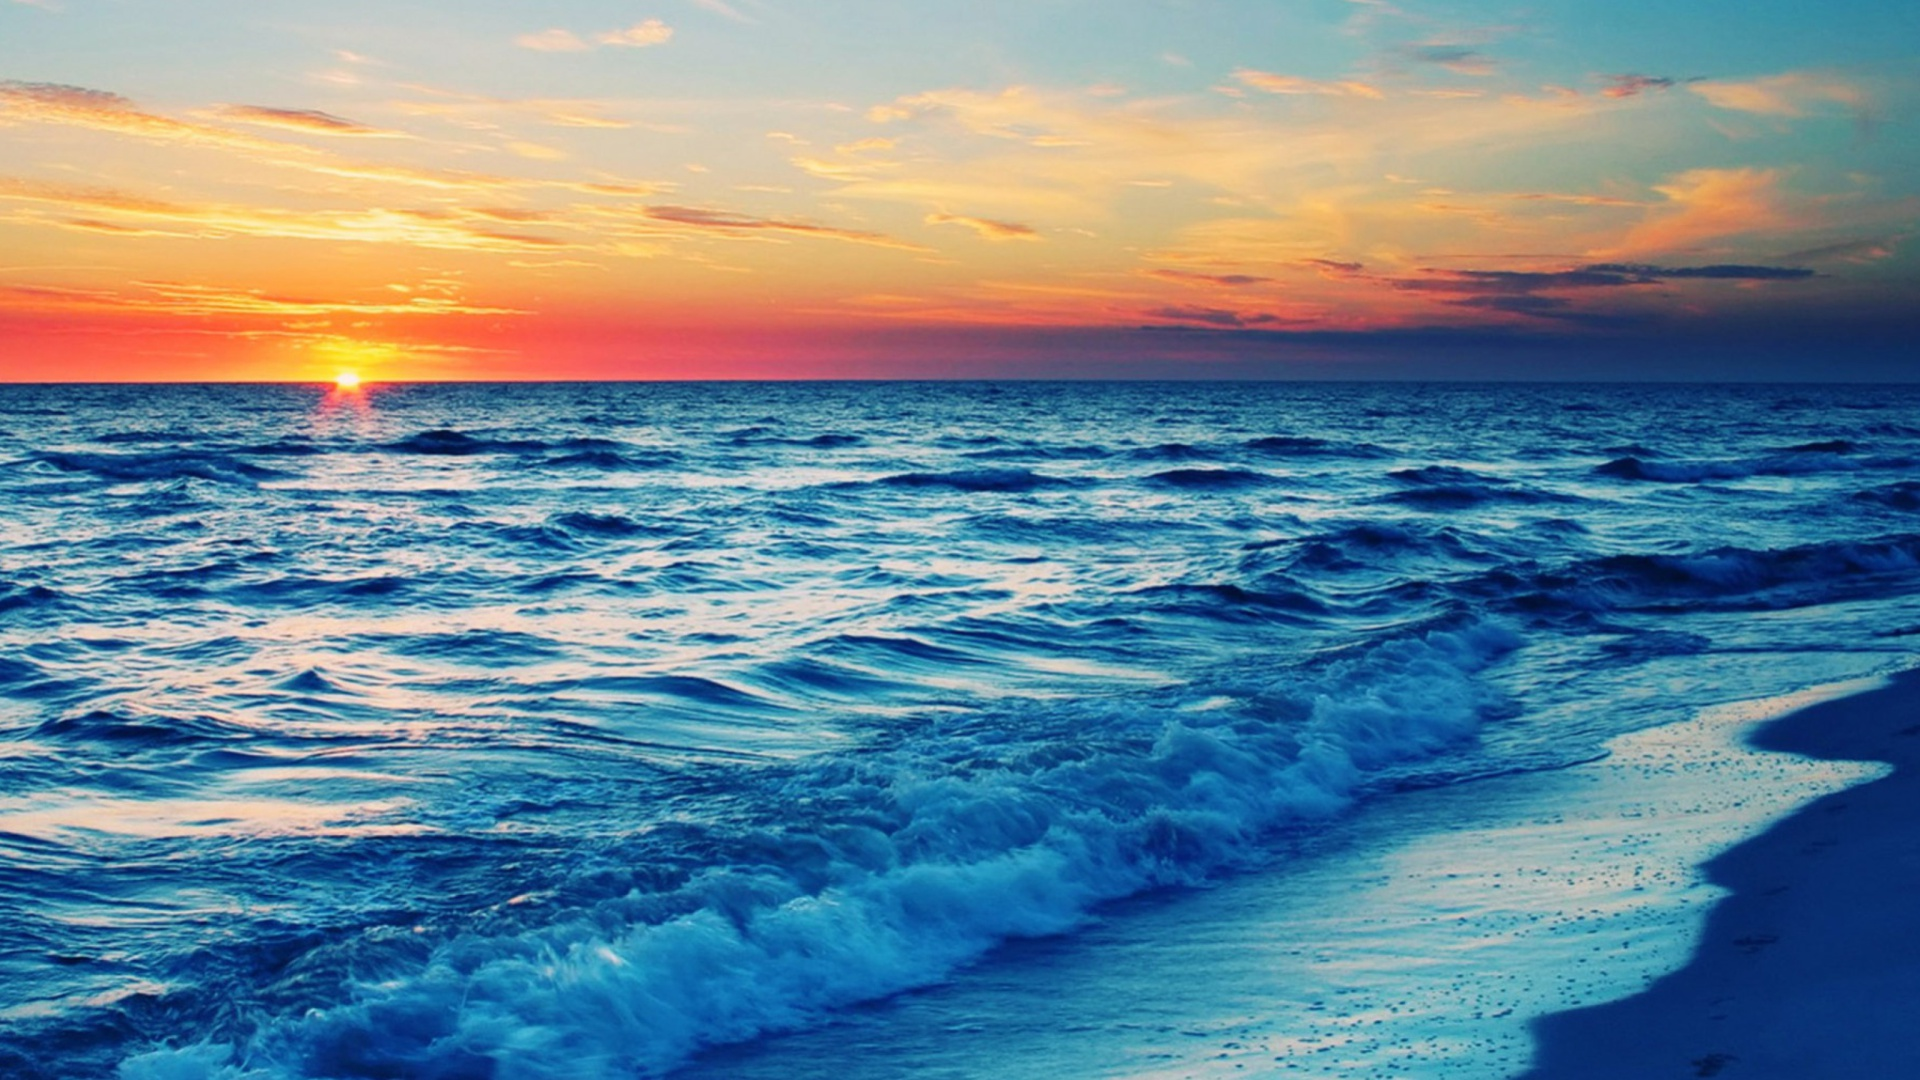 Beach At Sunset 1920x1080 wallpaper1920X1080 wallpaper screensaver 1920x1080